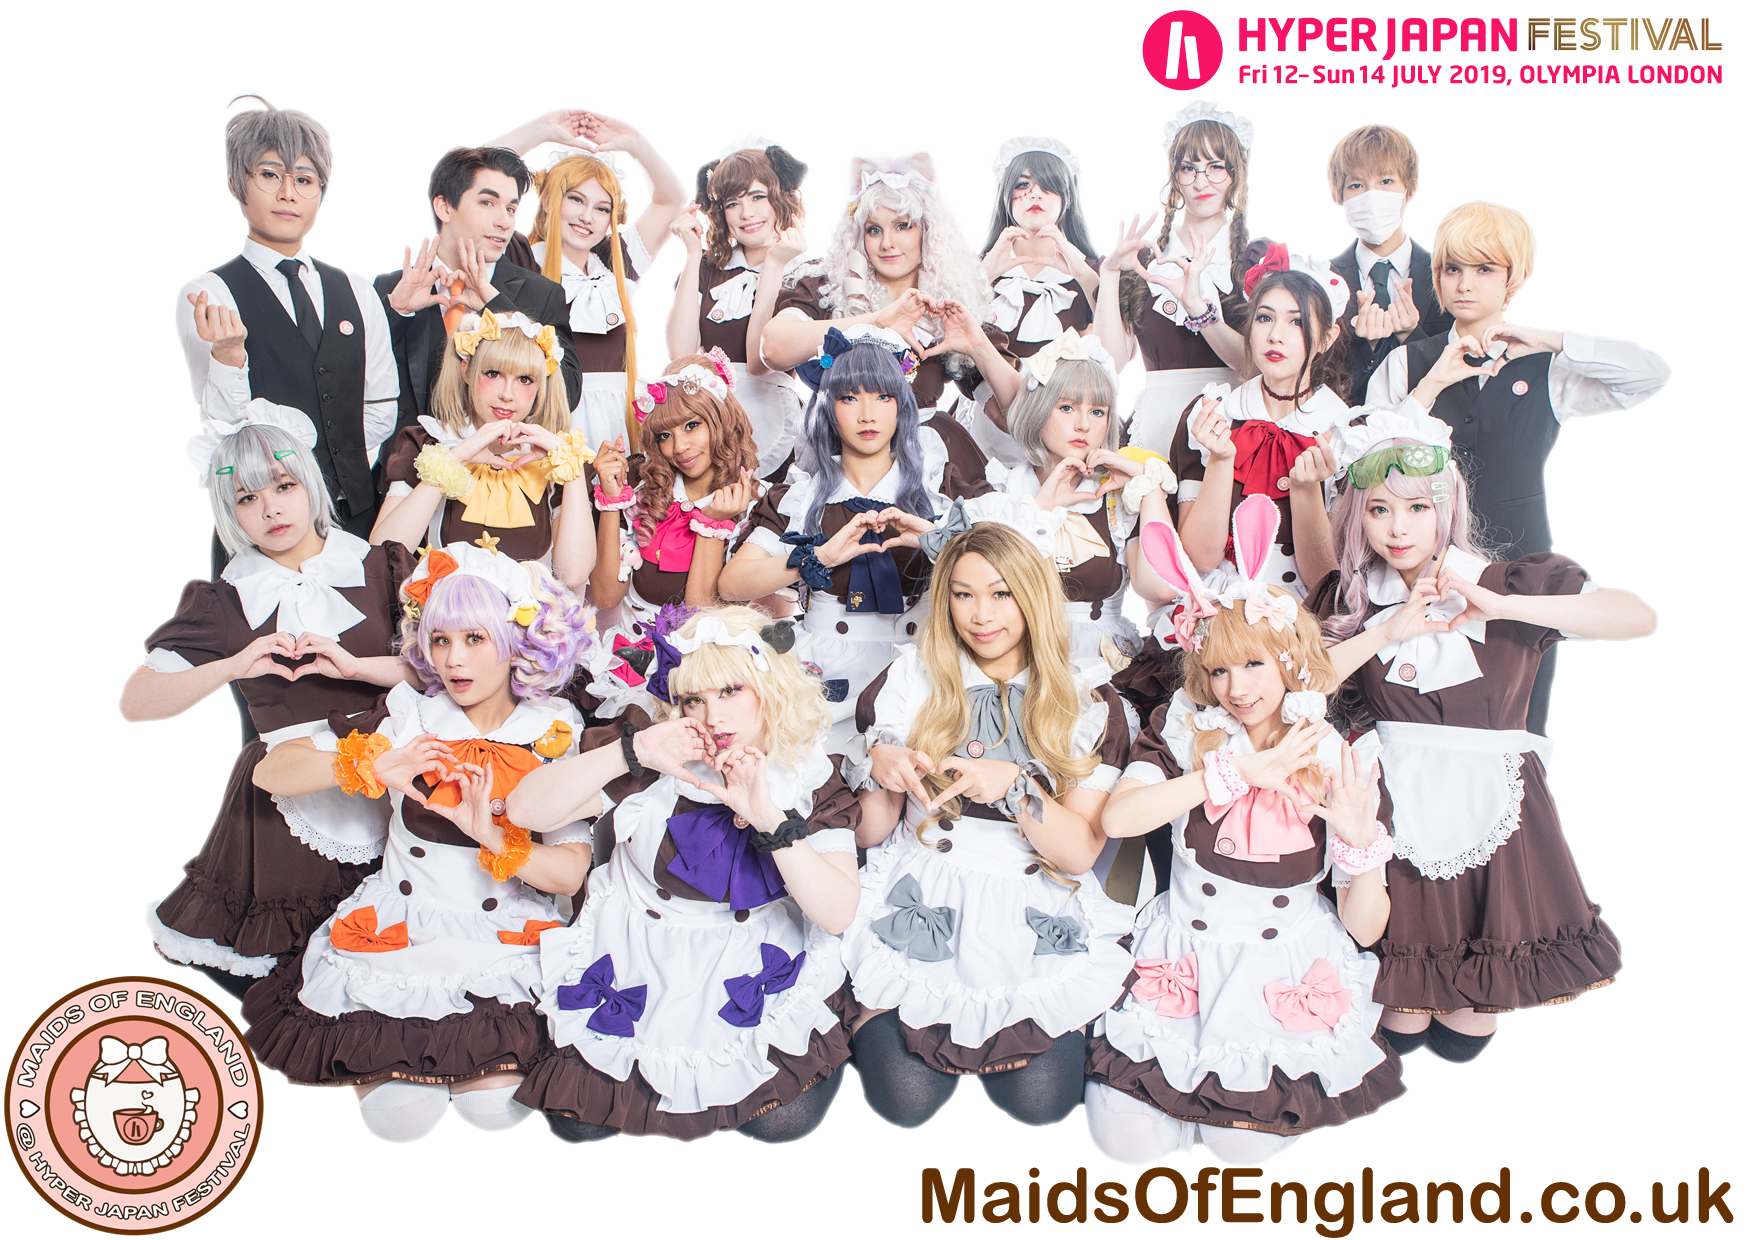 Maids Of England at HYPER JAPAN Festival